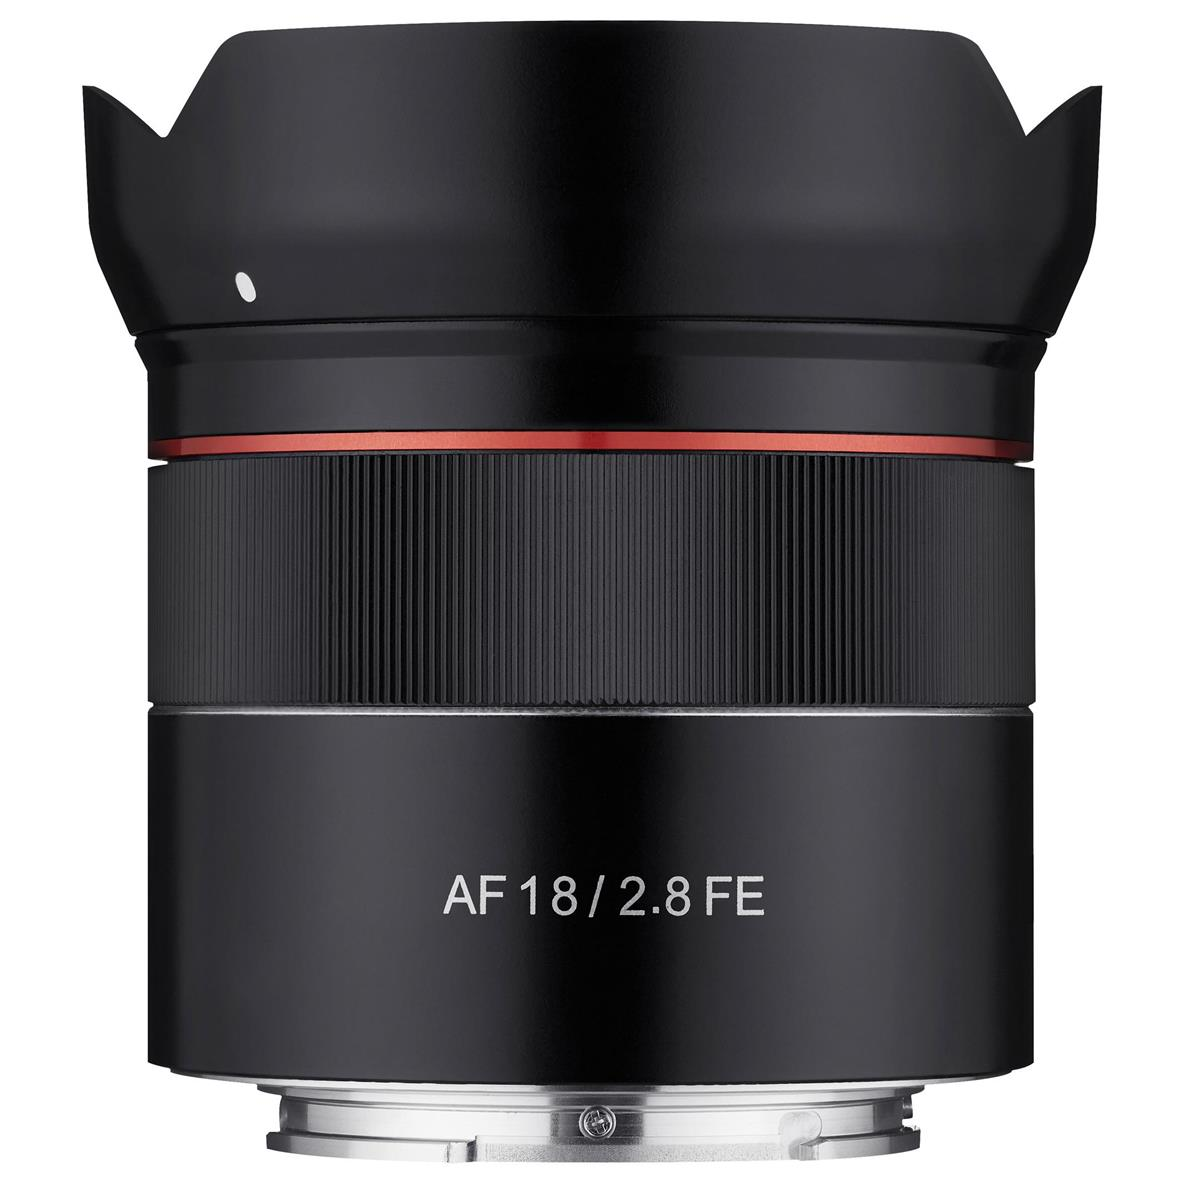 Hot Deals: Rokinon AF 18mm F2.8 FE Lens for $299, 45mm F1.8 for $289 and 75mm F1.8 for $299!